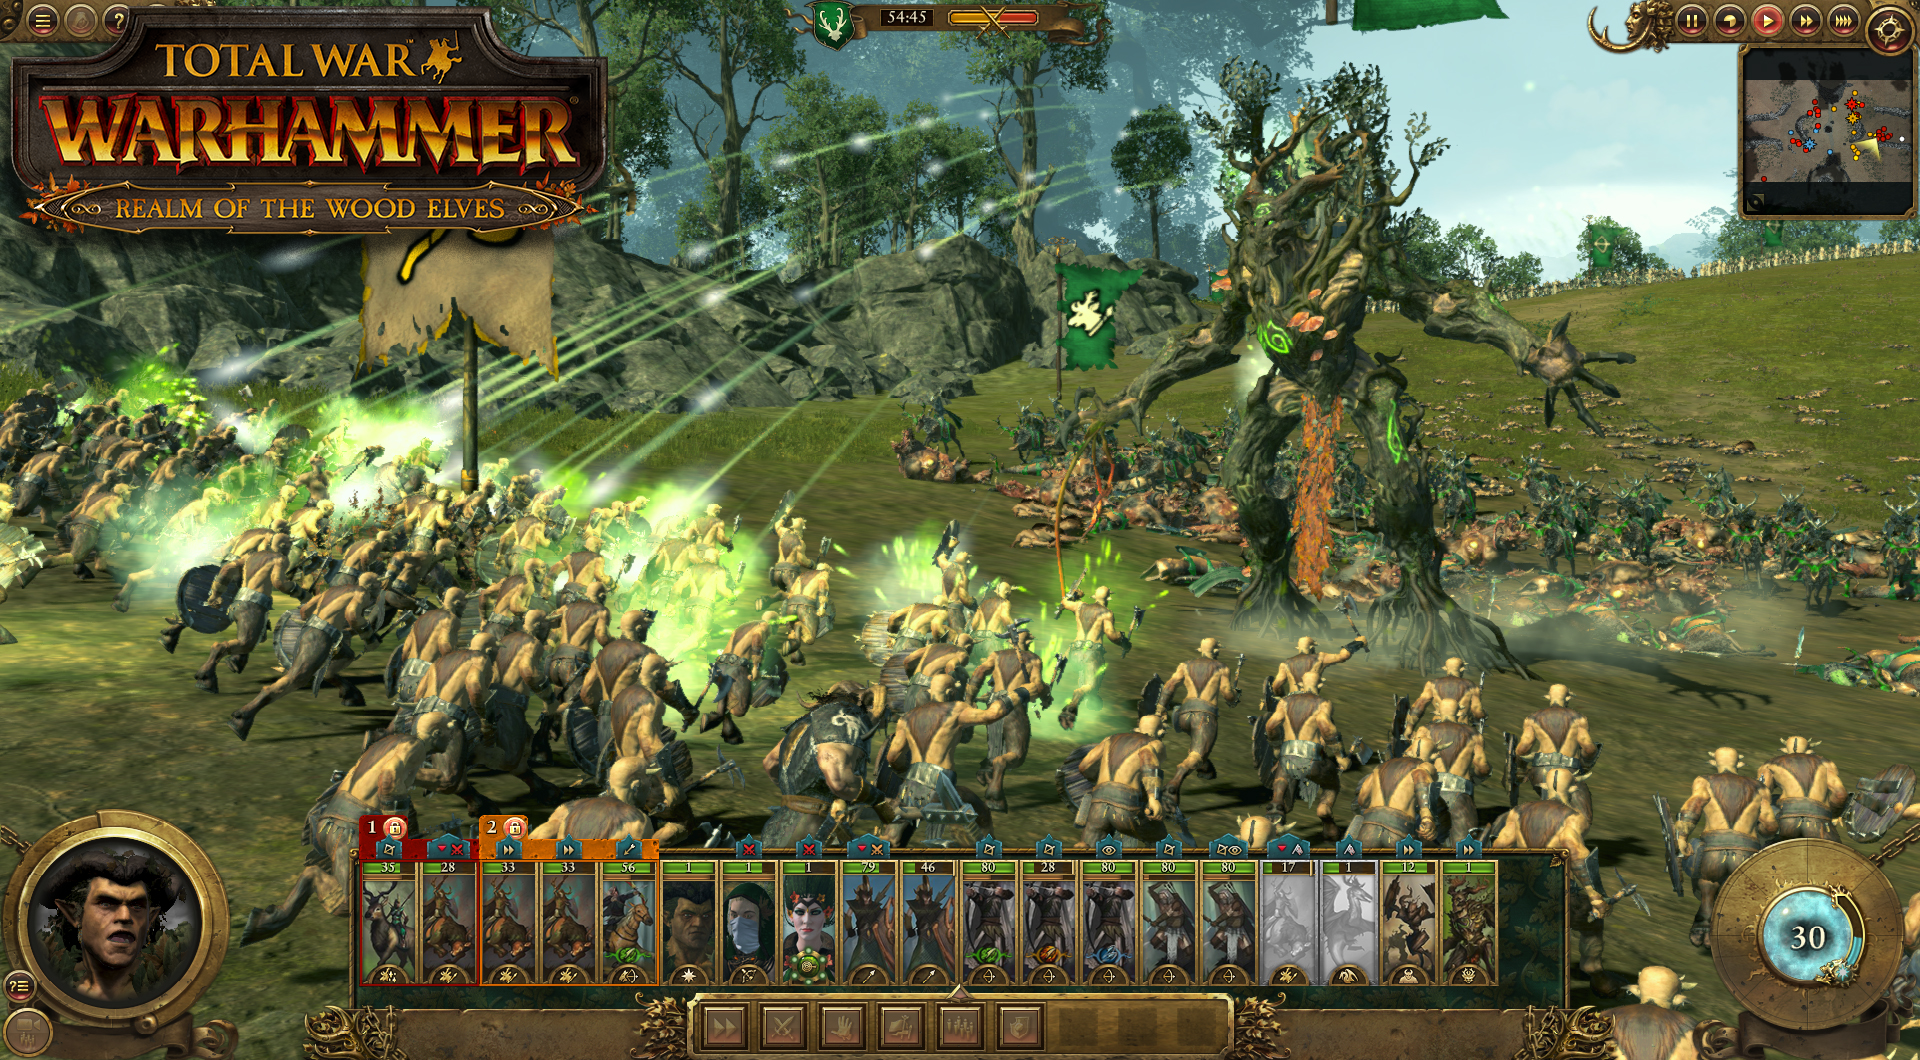 Total War: WARHAMMER - The Realm of the Wood Elves DLC [Online Game Code]